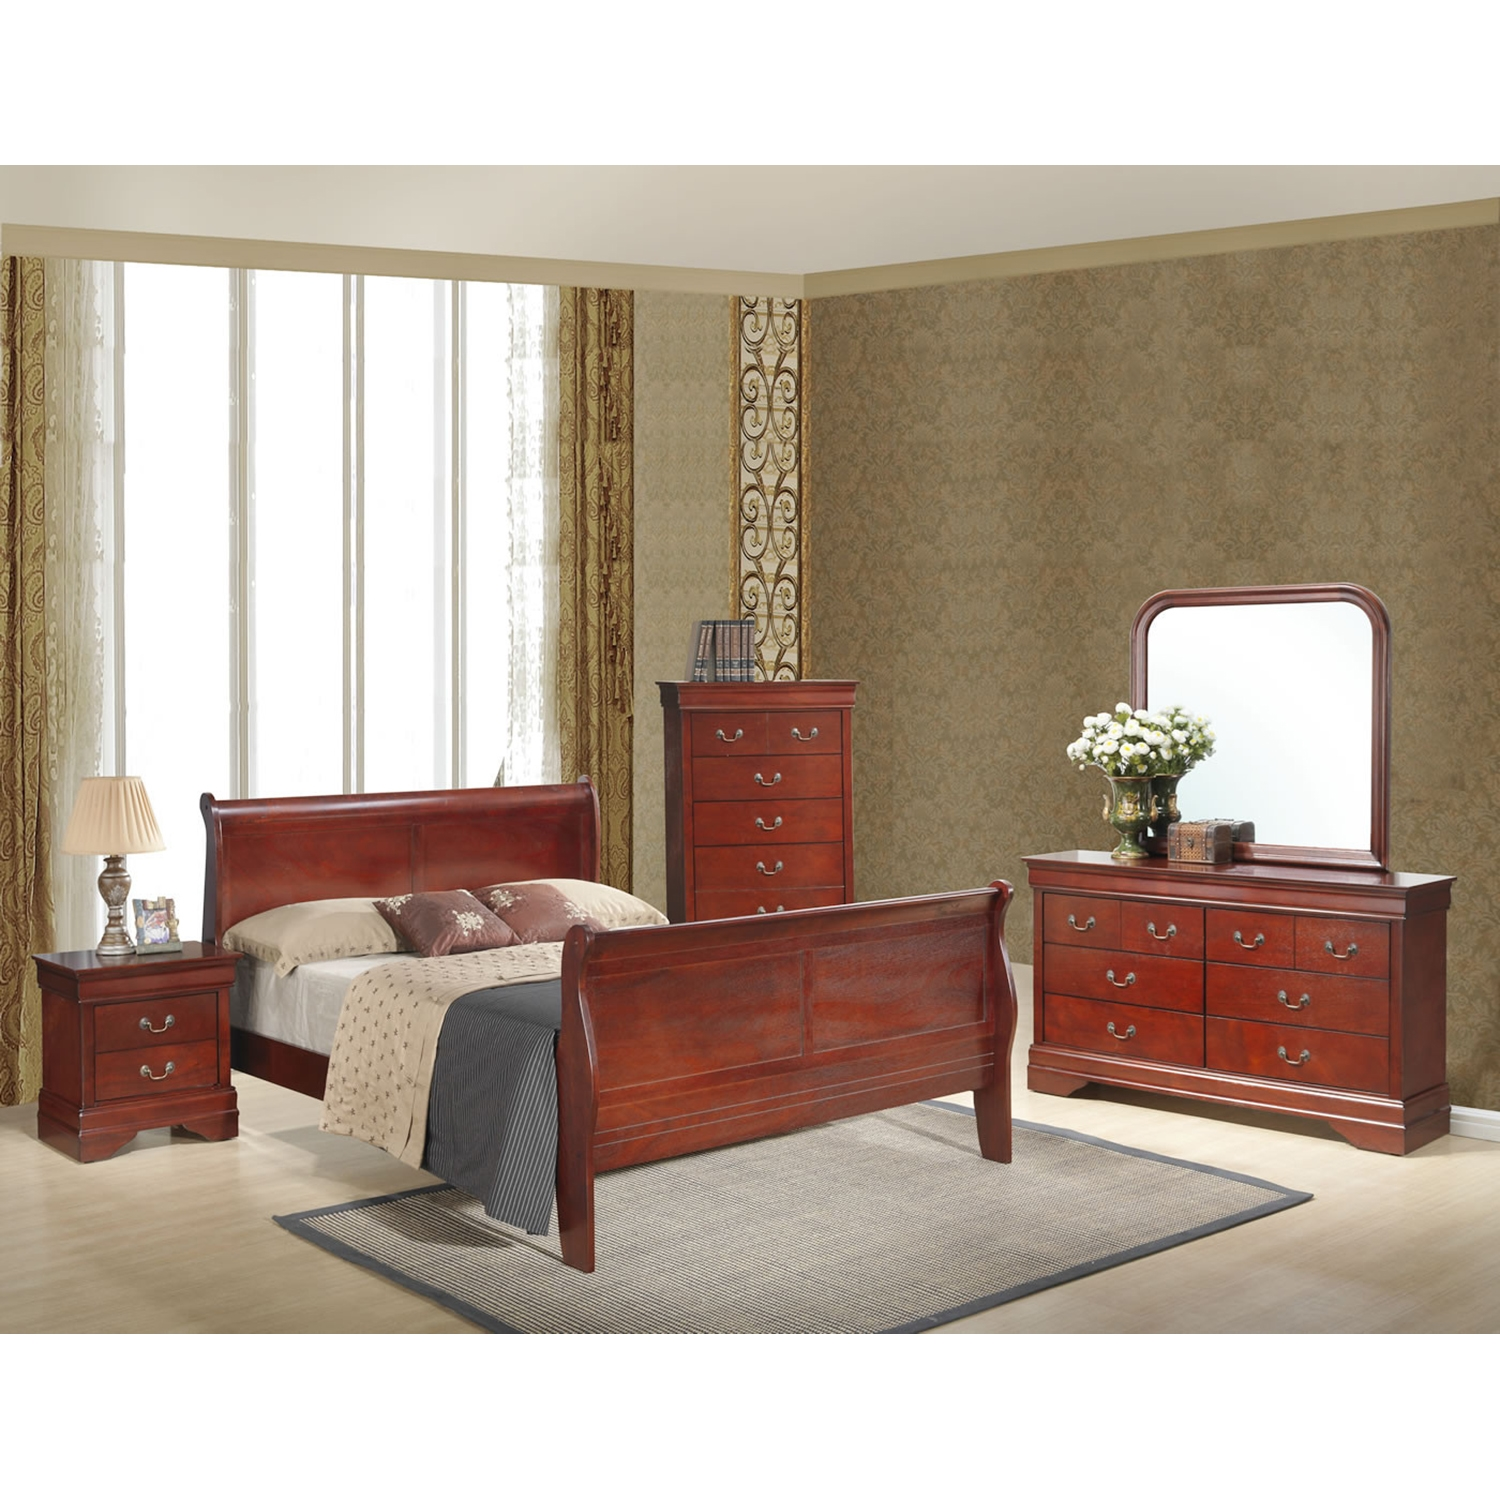 Philippe Bed in Cherry - GLO-PHILIPPE-BED